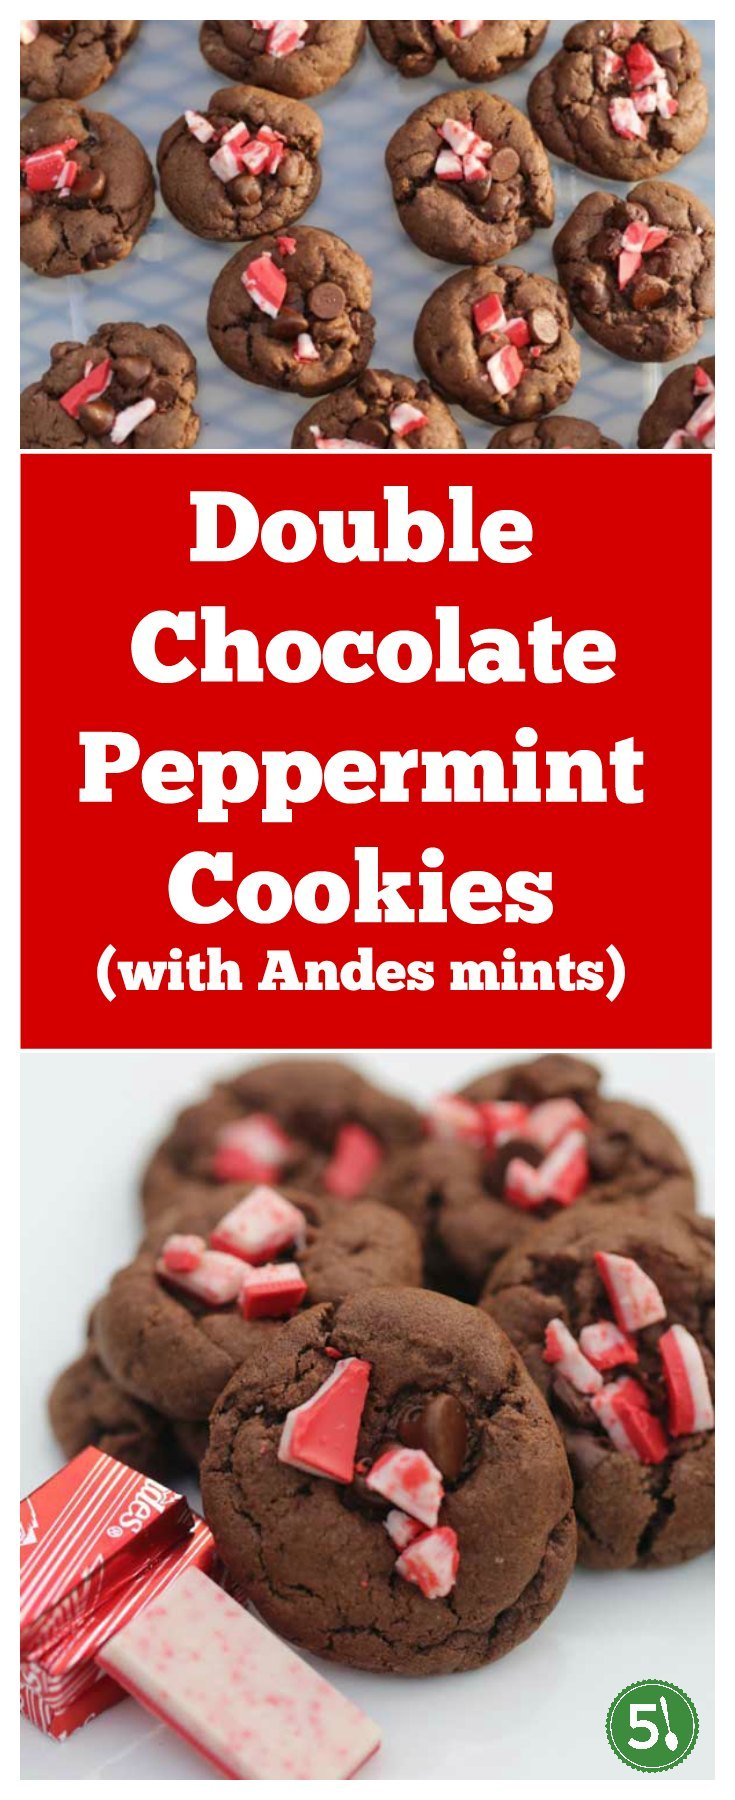 Easy double chocolate peppermint cookies recipe that are great for your list of holiday gift ideas.  These cookies smell heavenly while baking in the warm oven and are one of our favorite holiday desserts.